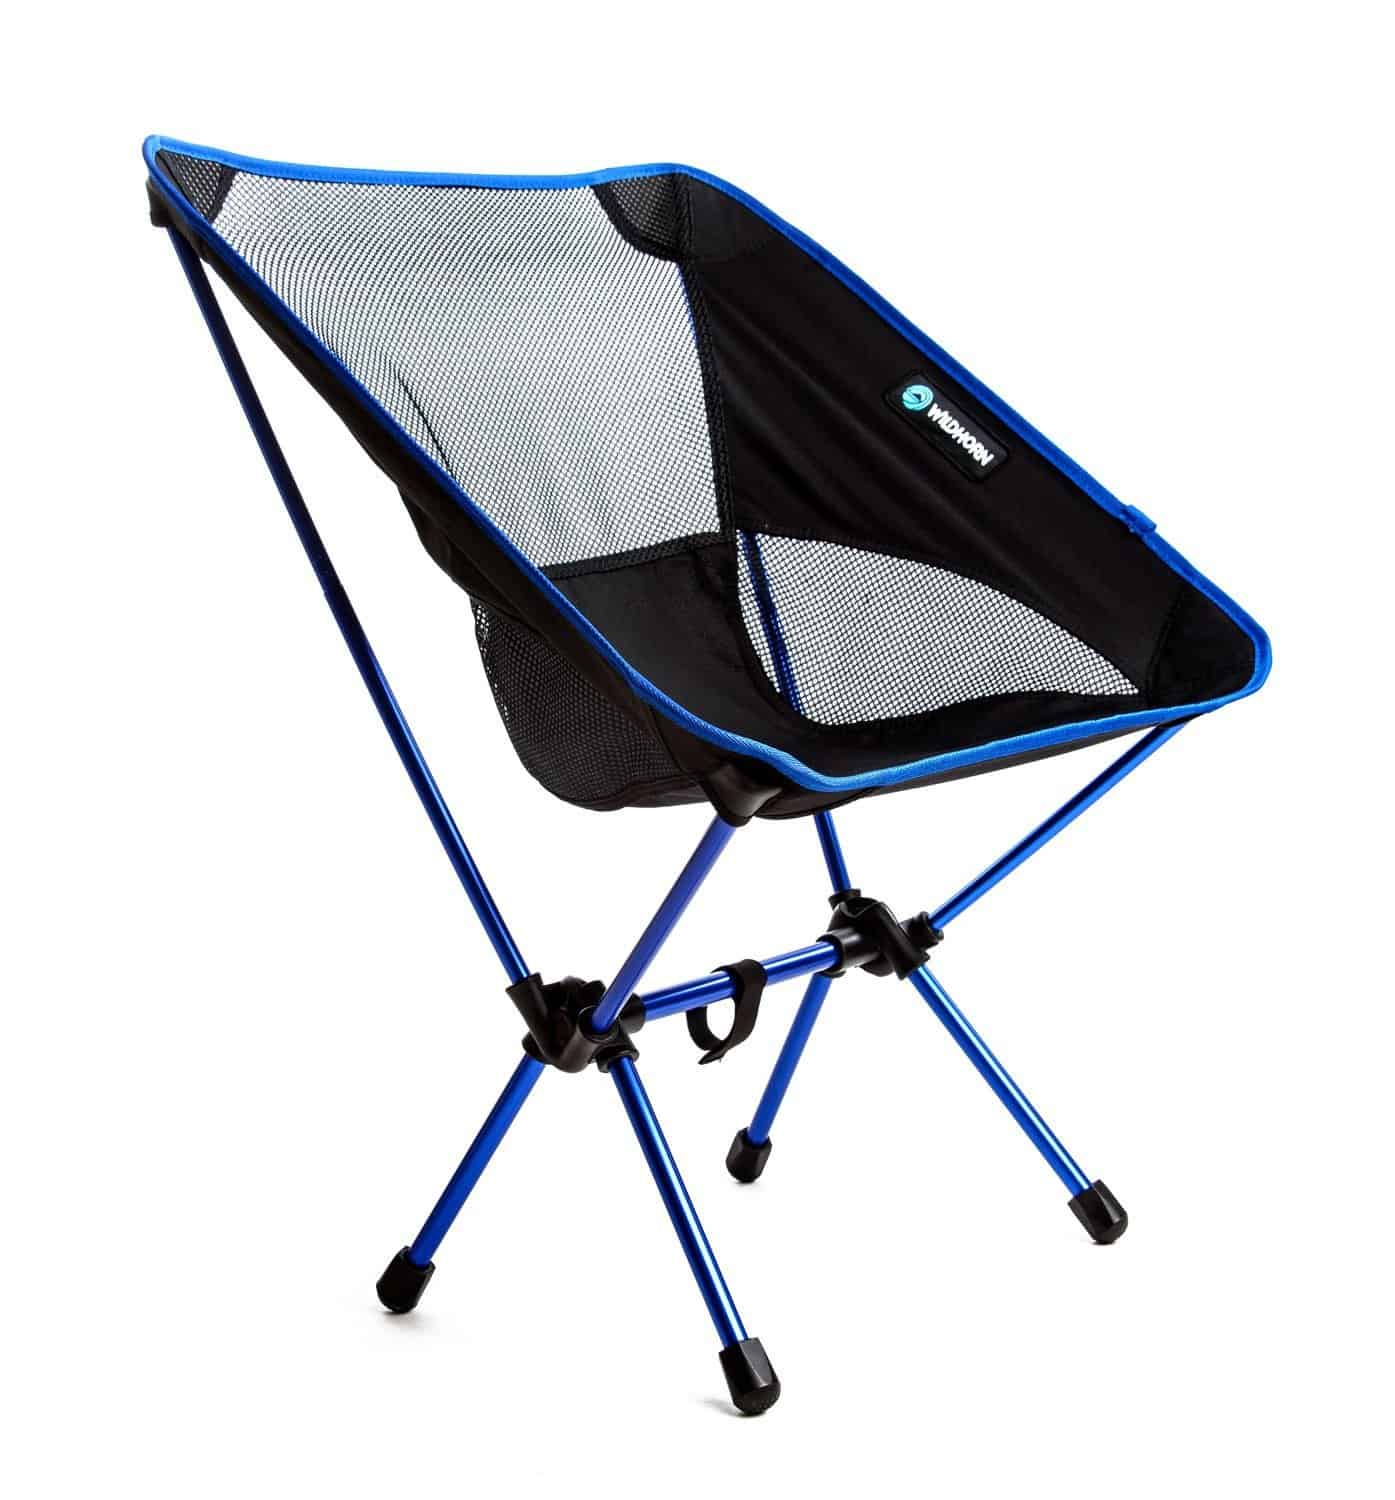 compact camp chair chairscape contact details the beach with a secret weapon no more sinking in